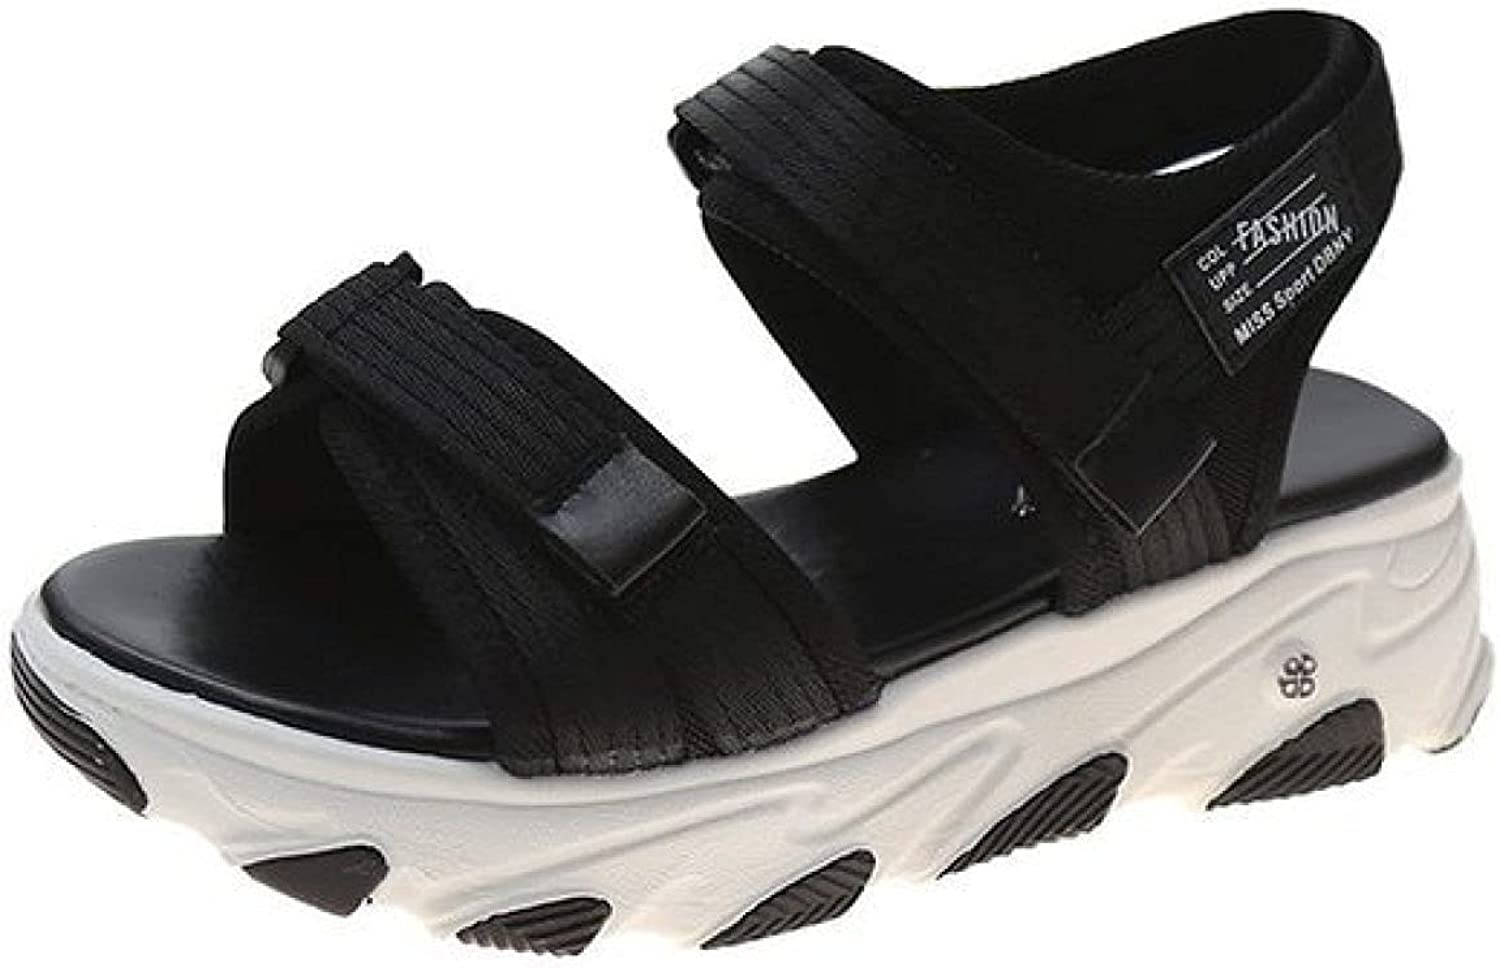 67% OFF of fixed price Modish Sandals for Max 45% OFF Woman with Arch Wide Support Sport Ope Style